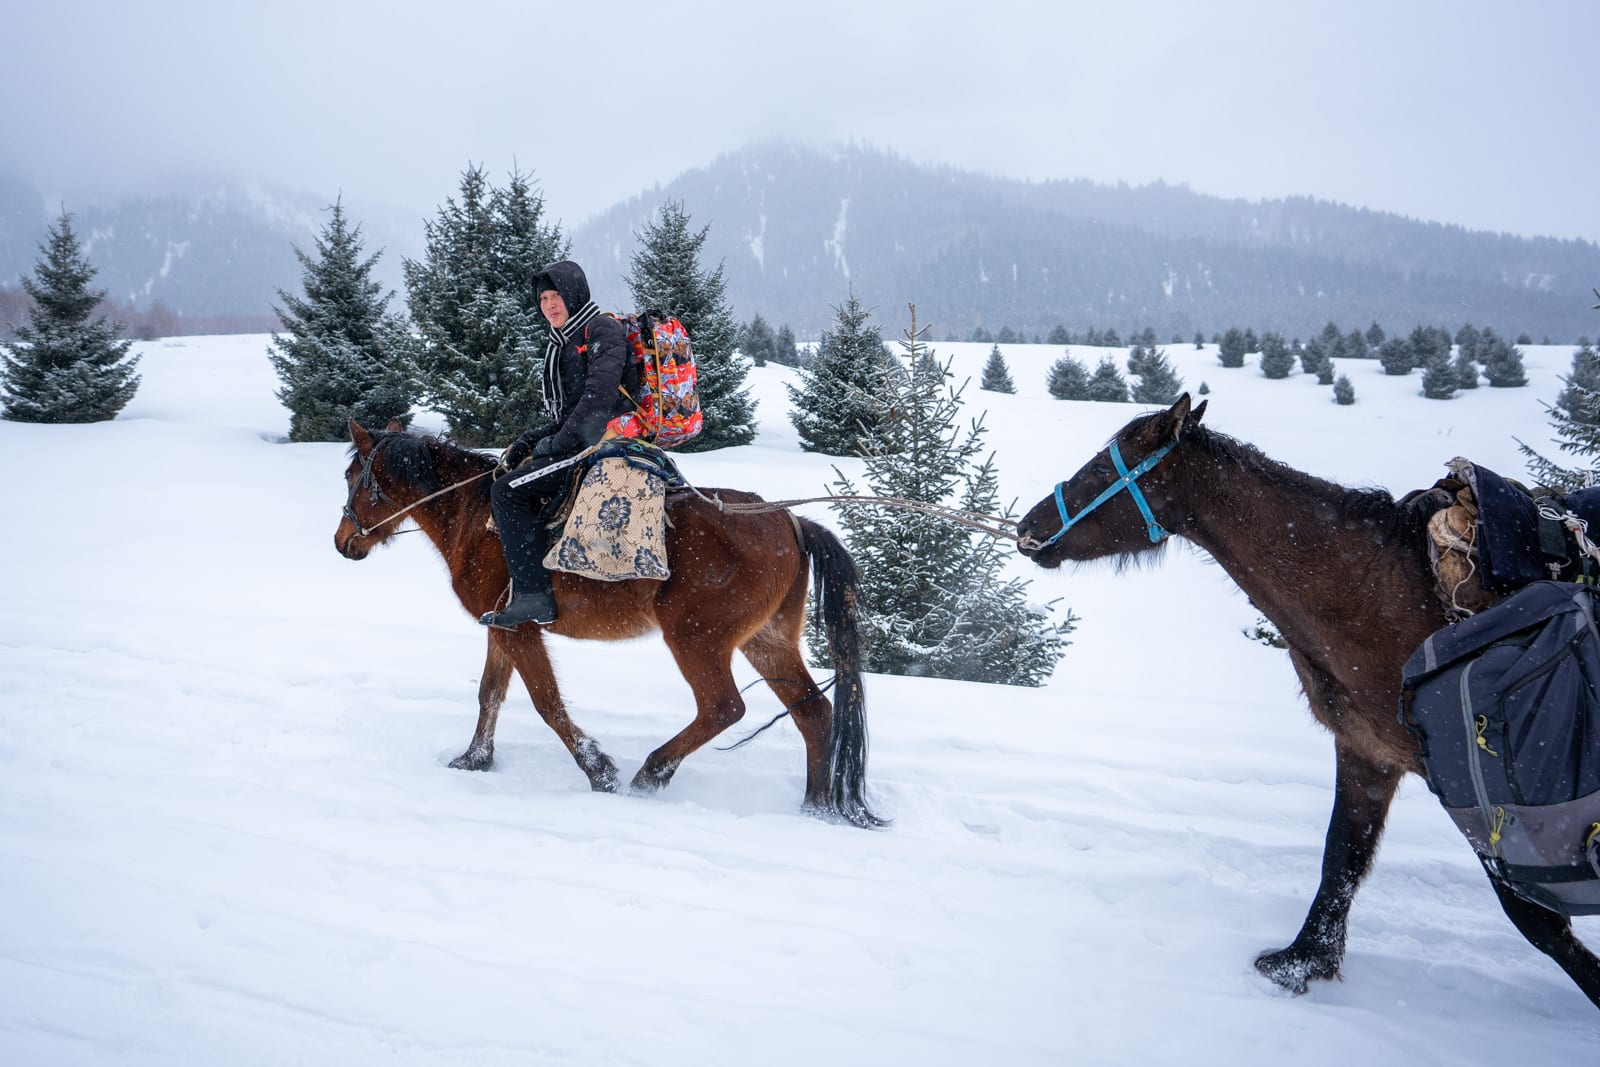 Porter carrying backpack on horse in the snow in Boz Uchuk, Kyrgyzstan